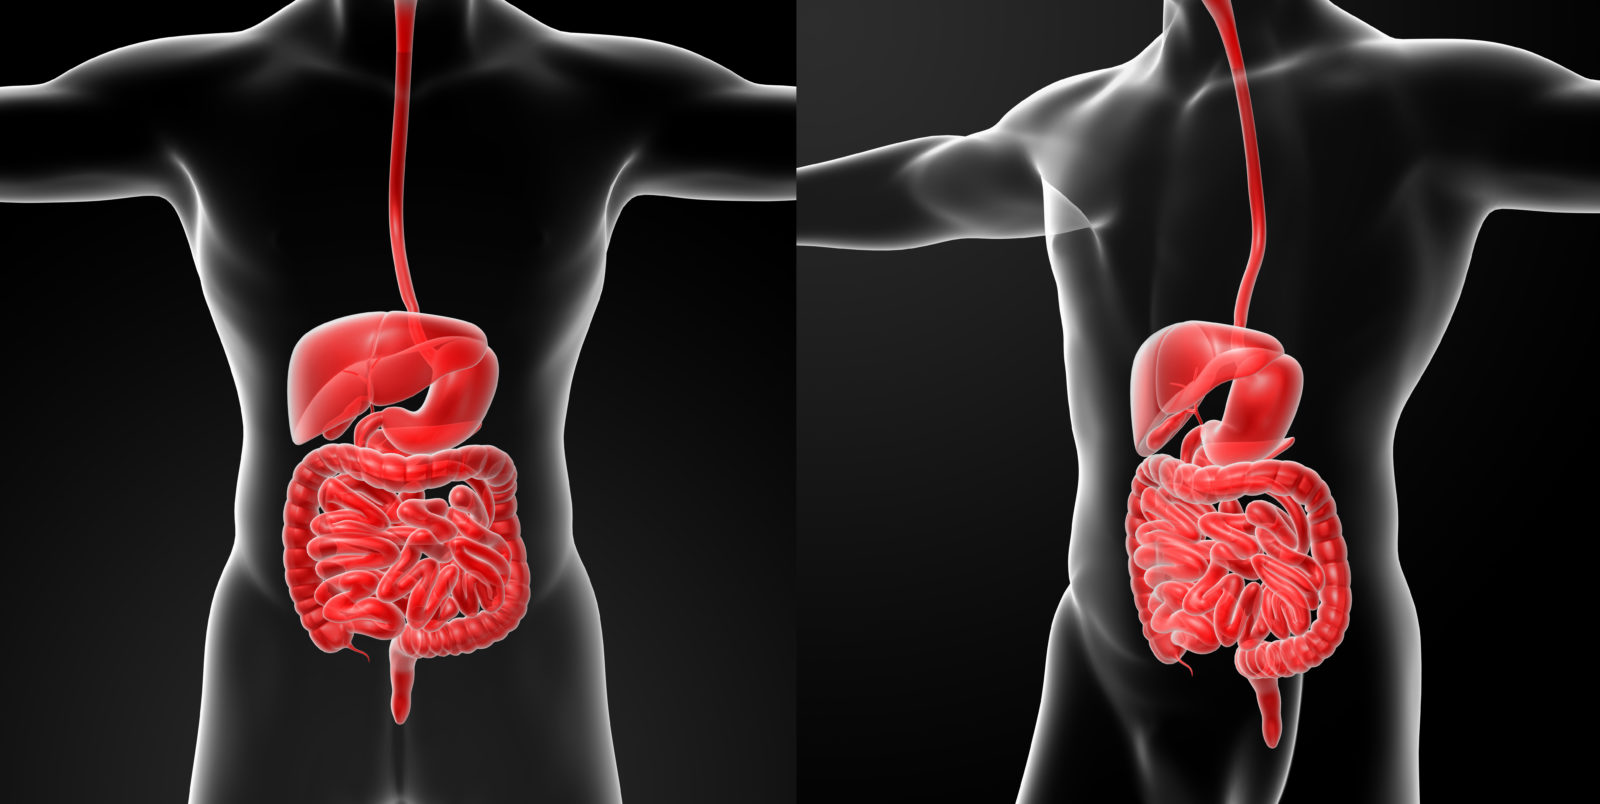 How Do I Manage Crohn's Disease?